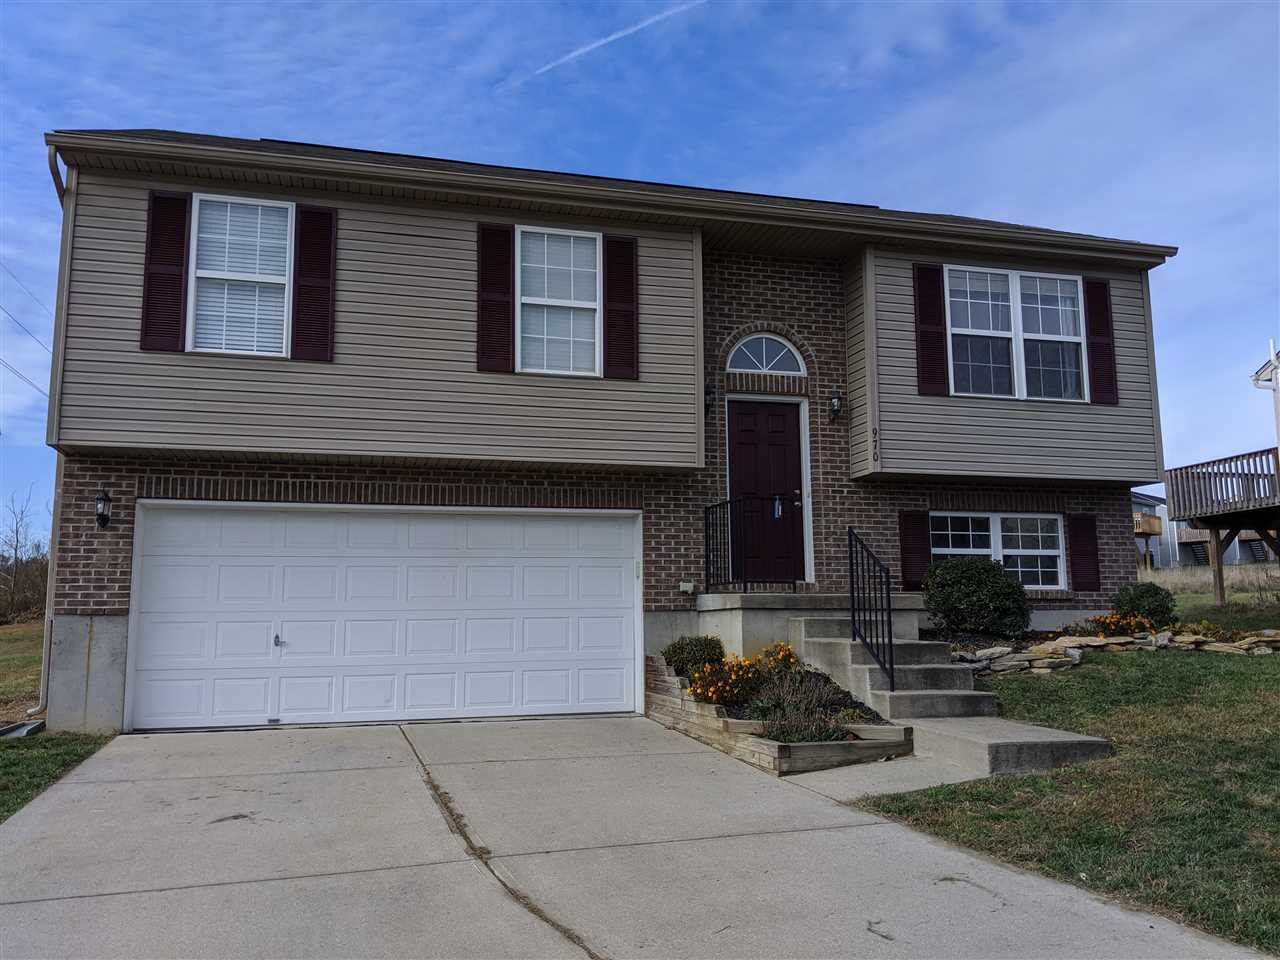 Photo 2 for 970 Wermeling Ln Elsmere, KY 41018